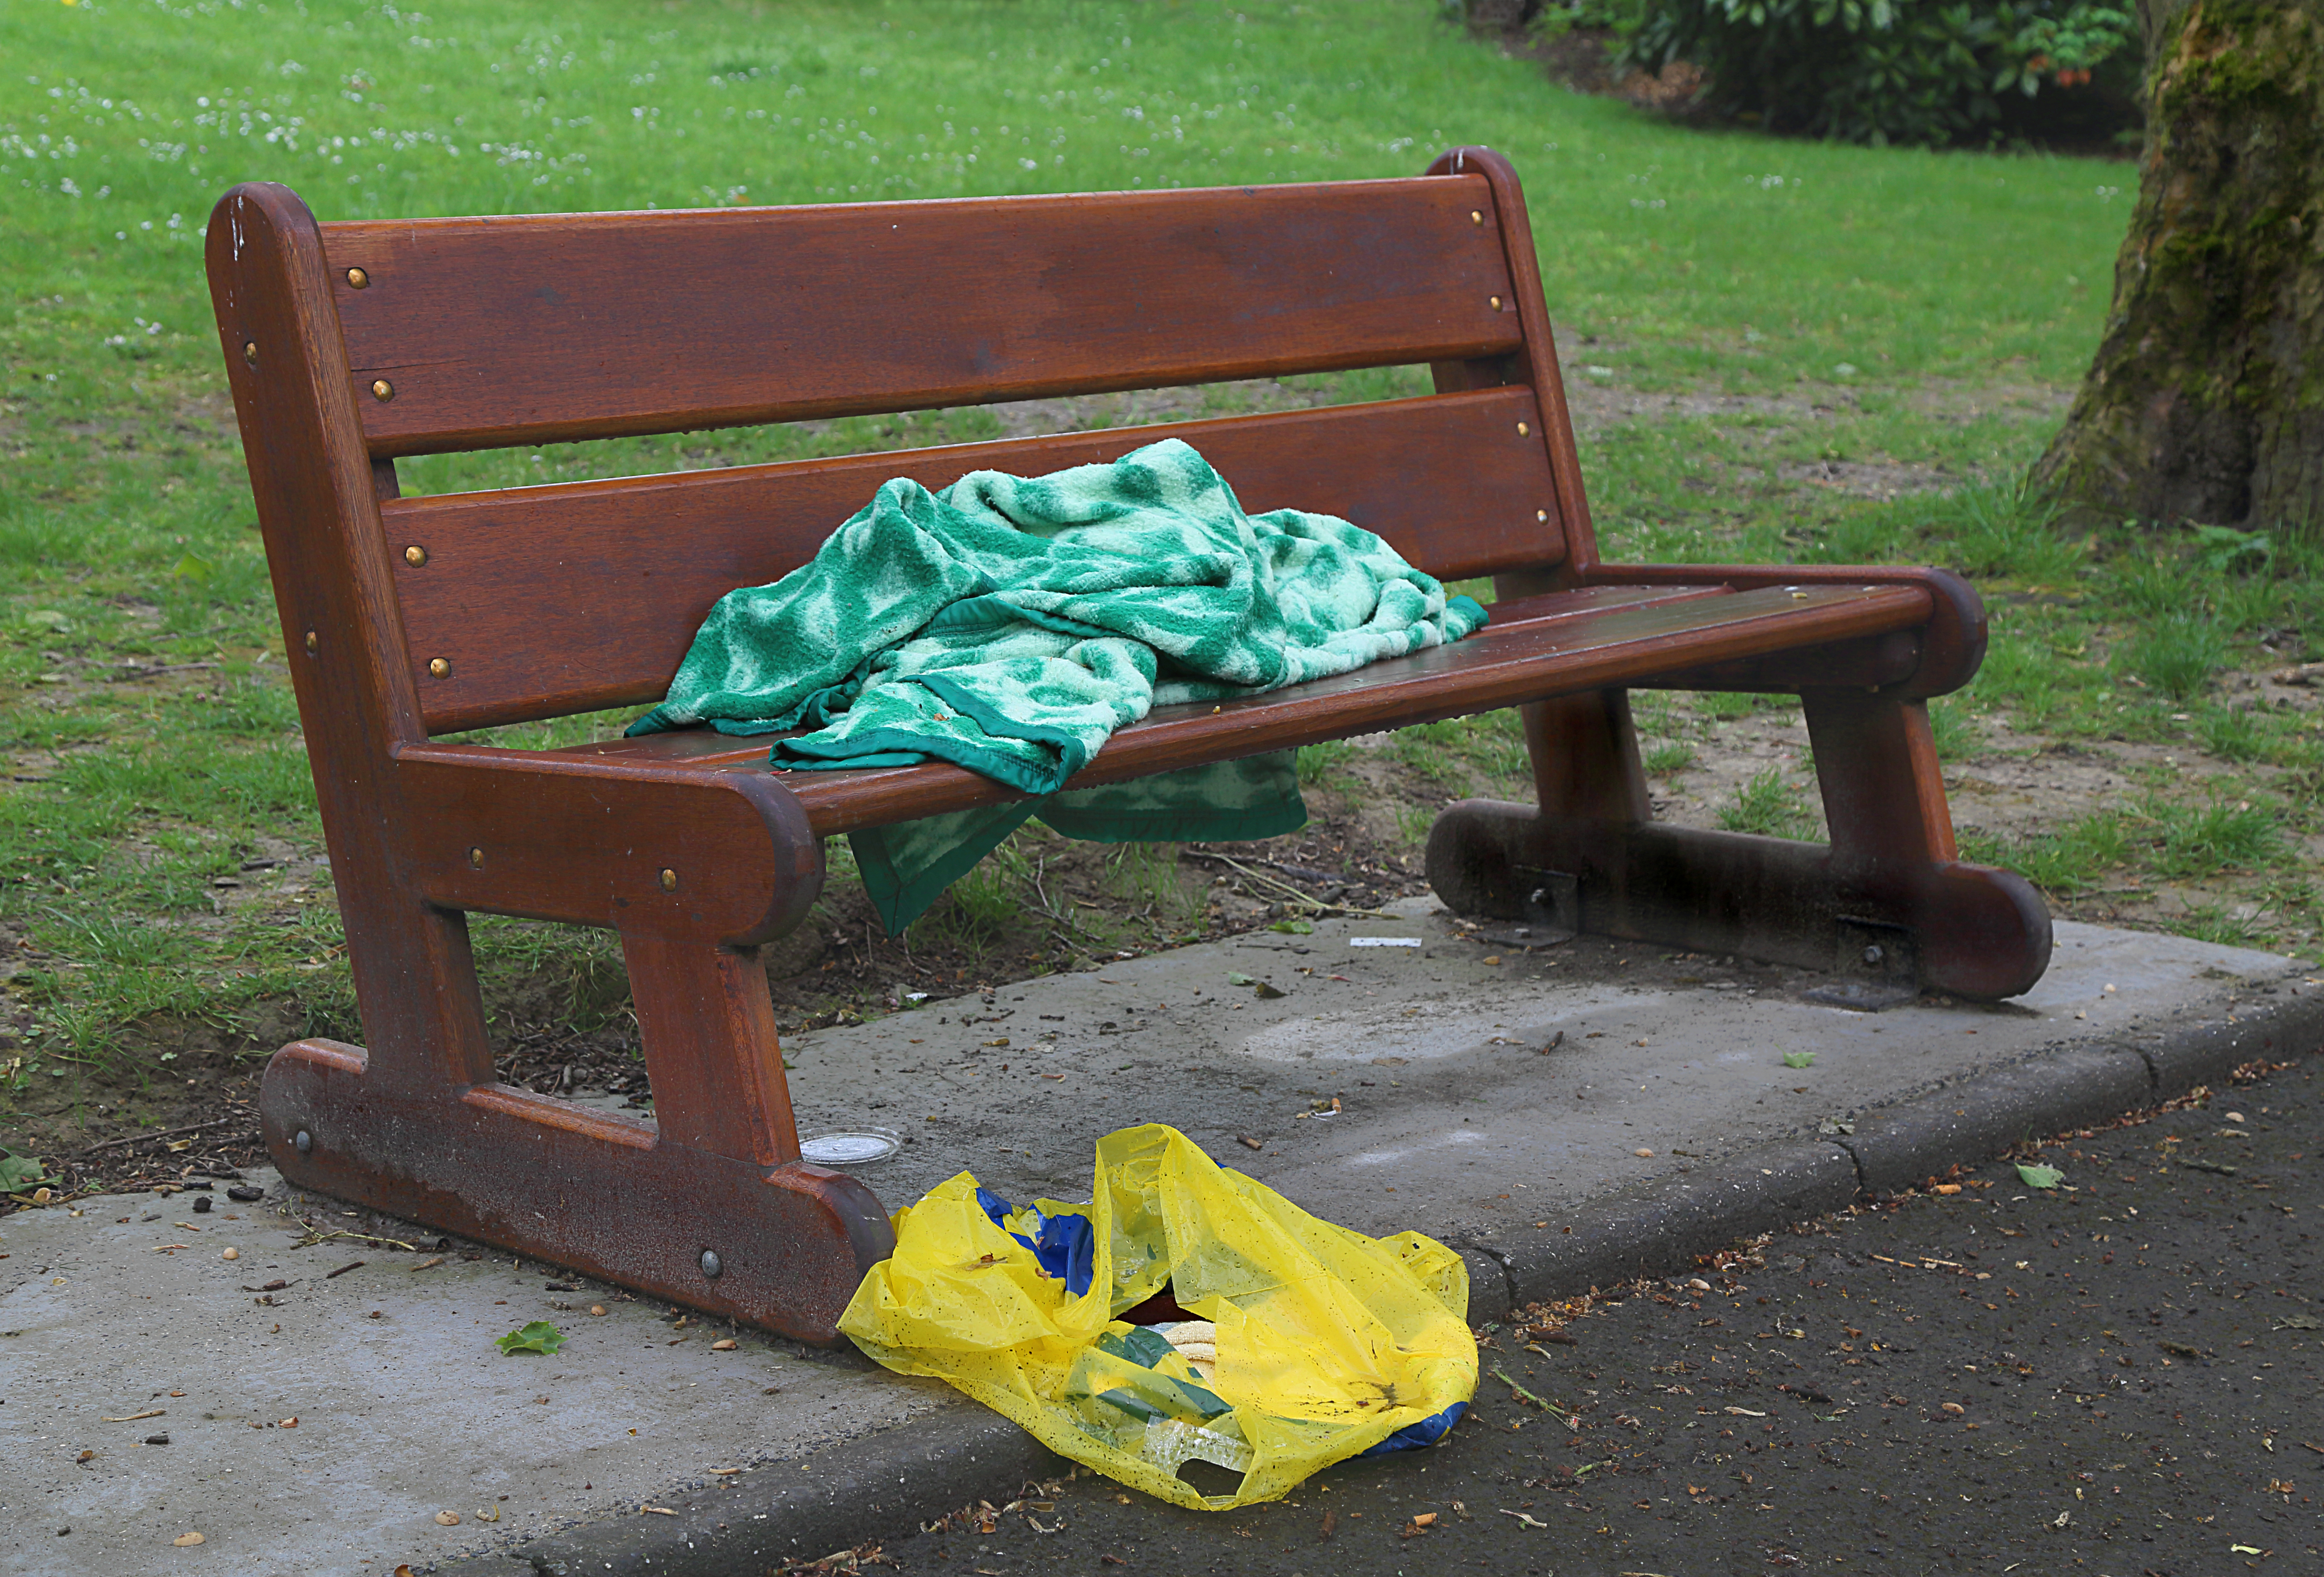 File Blanket On A Bench In A Park J1 Jpg Wikimedia Commons